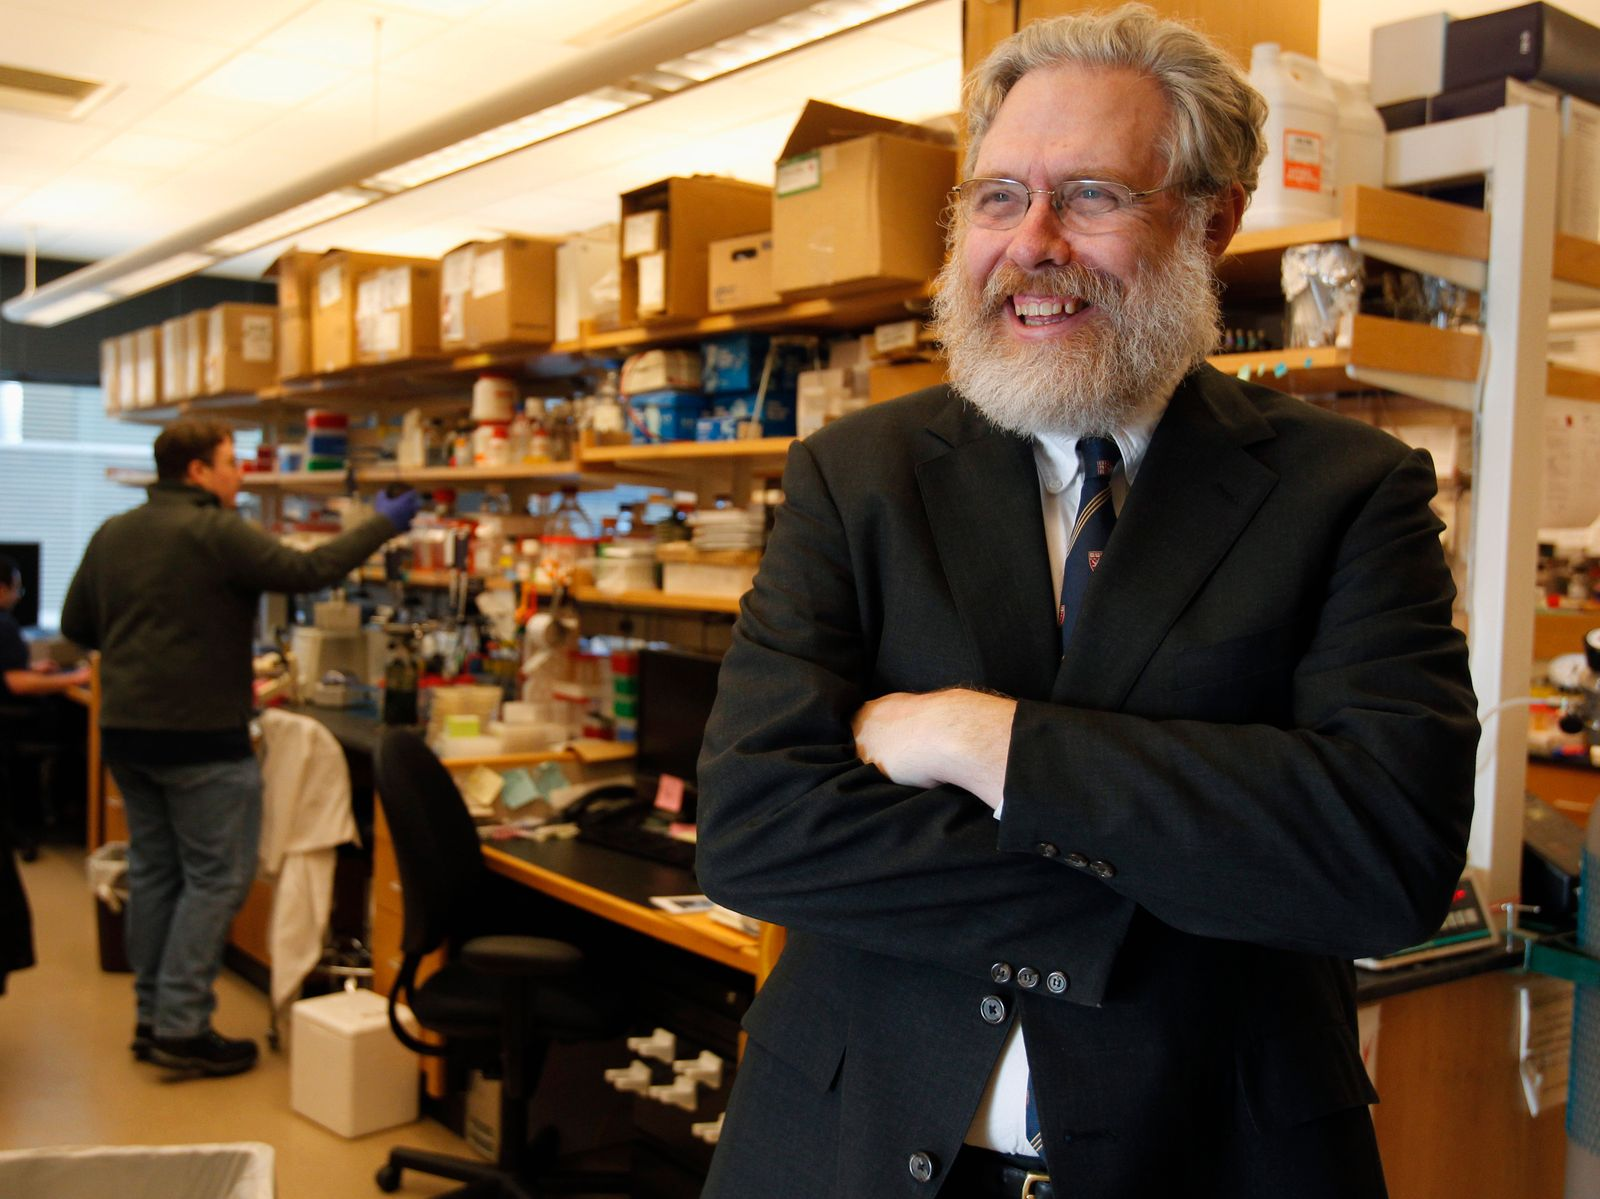 Harvard professor and scientist Church poses for a portrait inside his lab at Harvard Medical School in Boston